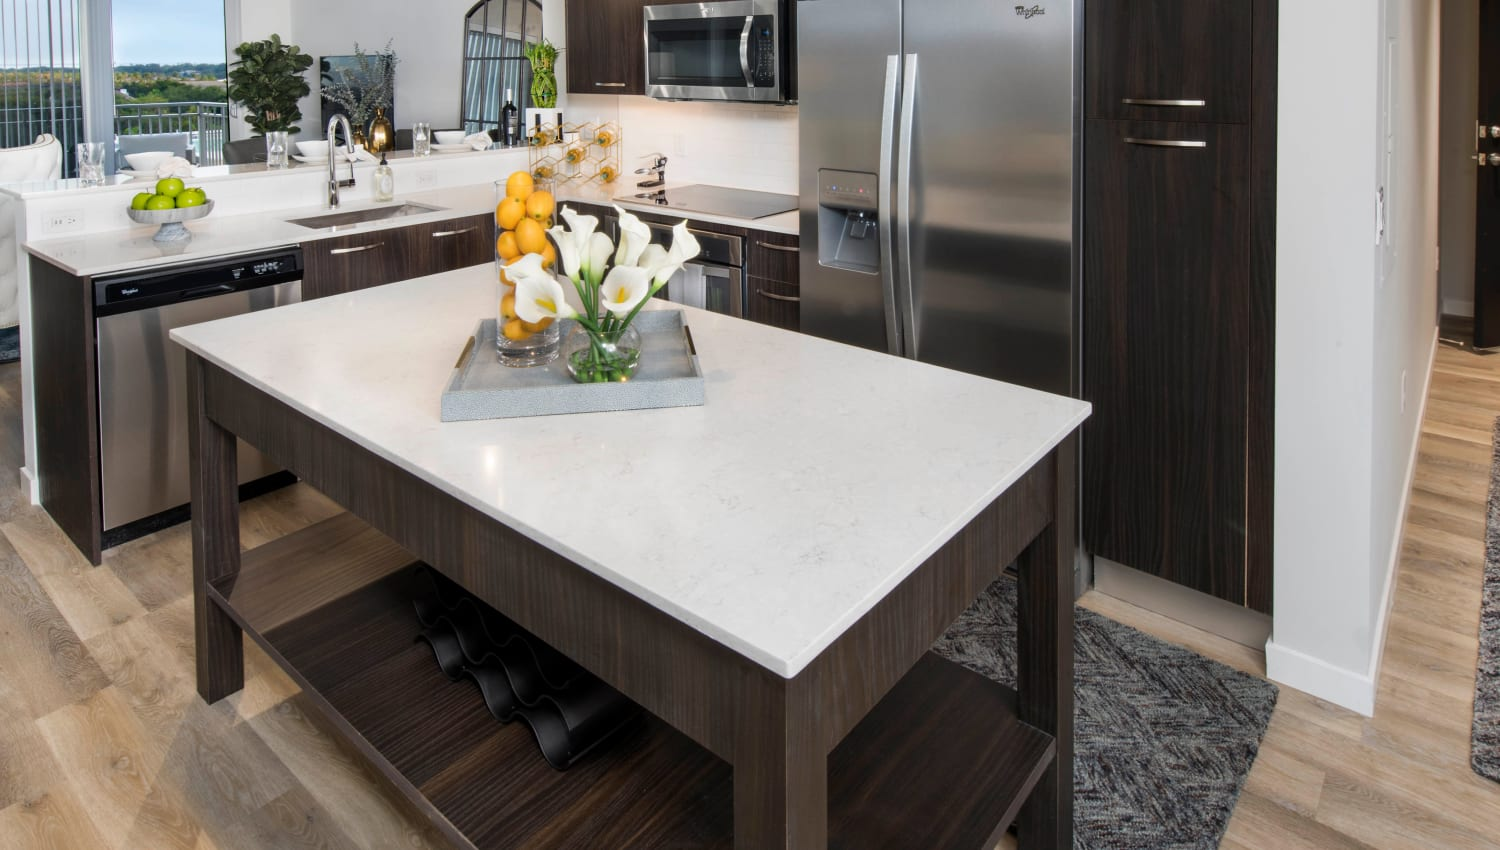 Stainless-steel appliances and an island in a model home's kitchen at Olympus Harbour Island in Tampa, Florida